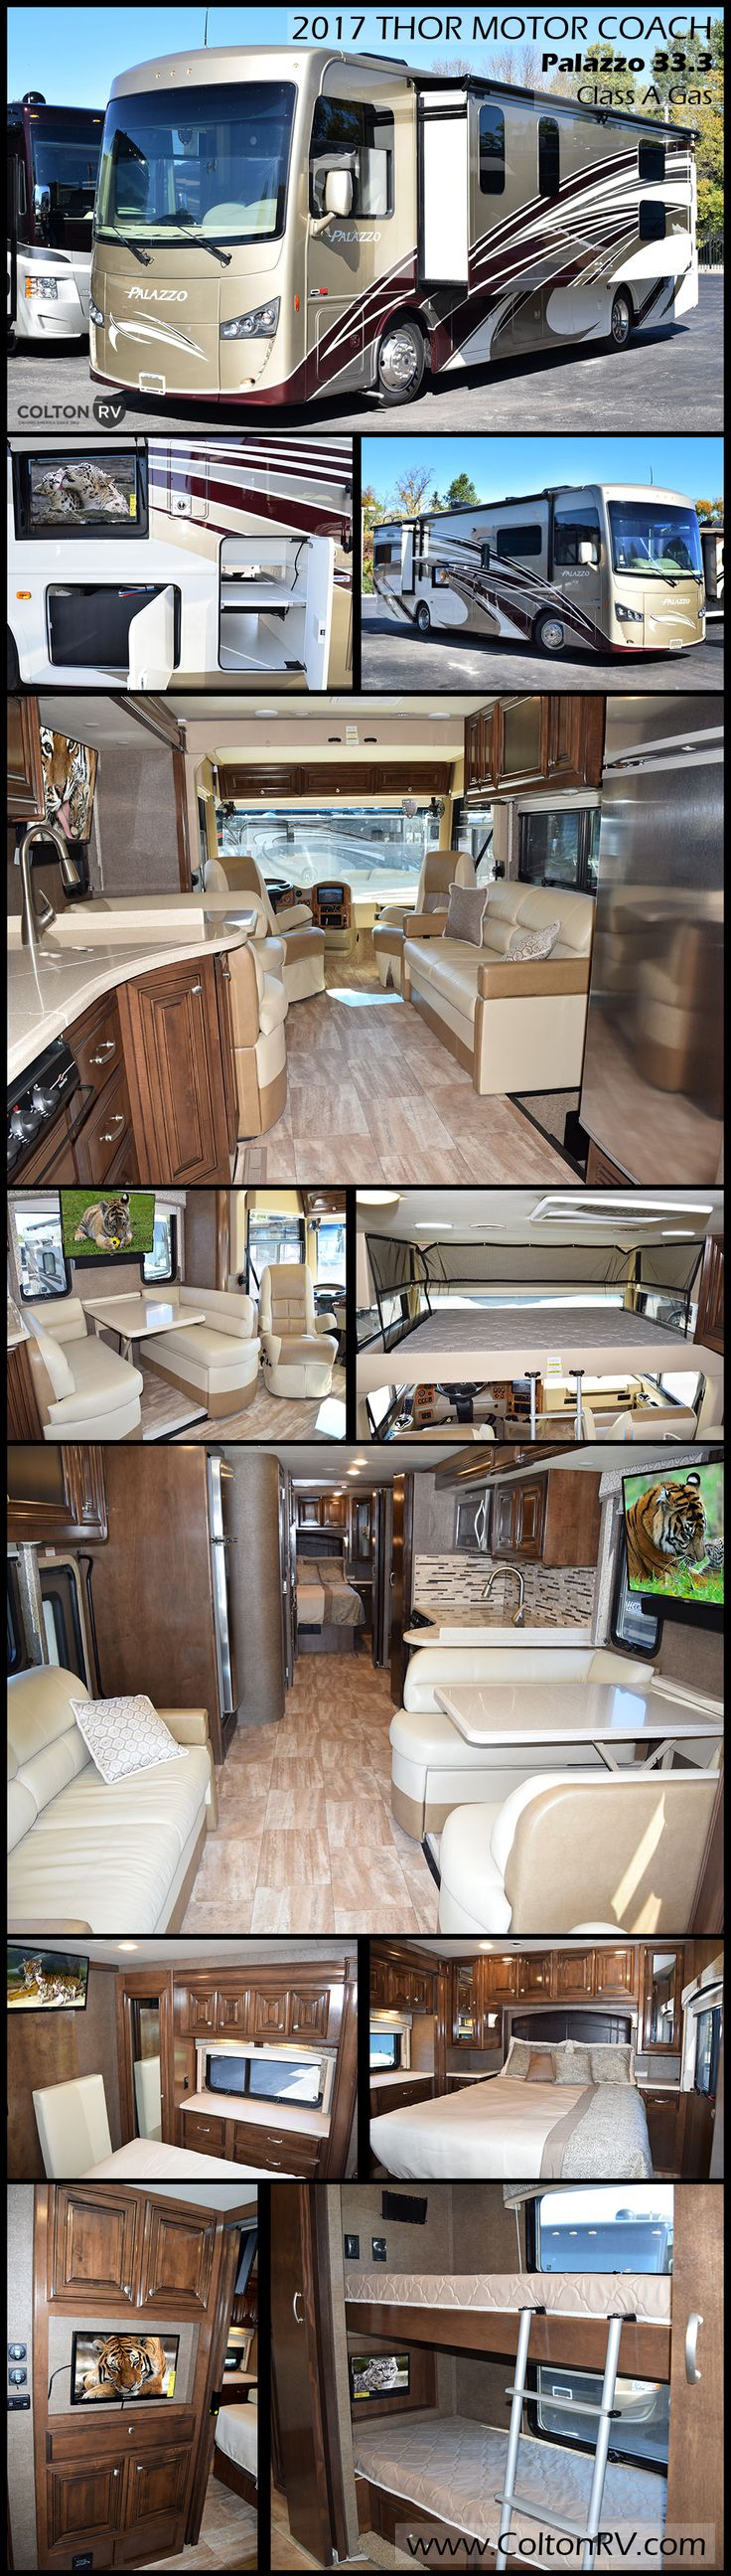 Every inch of space inside and out of this 2017 thor motor coach palazzo bunkhouse class a diesel motorhome is designed to make life on the road more